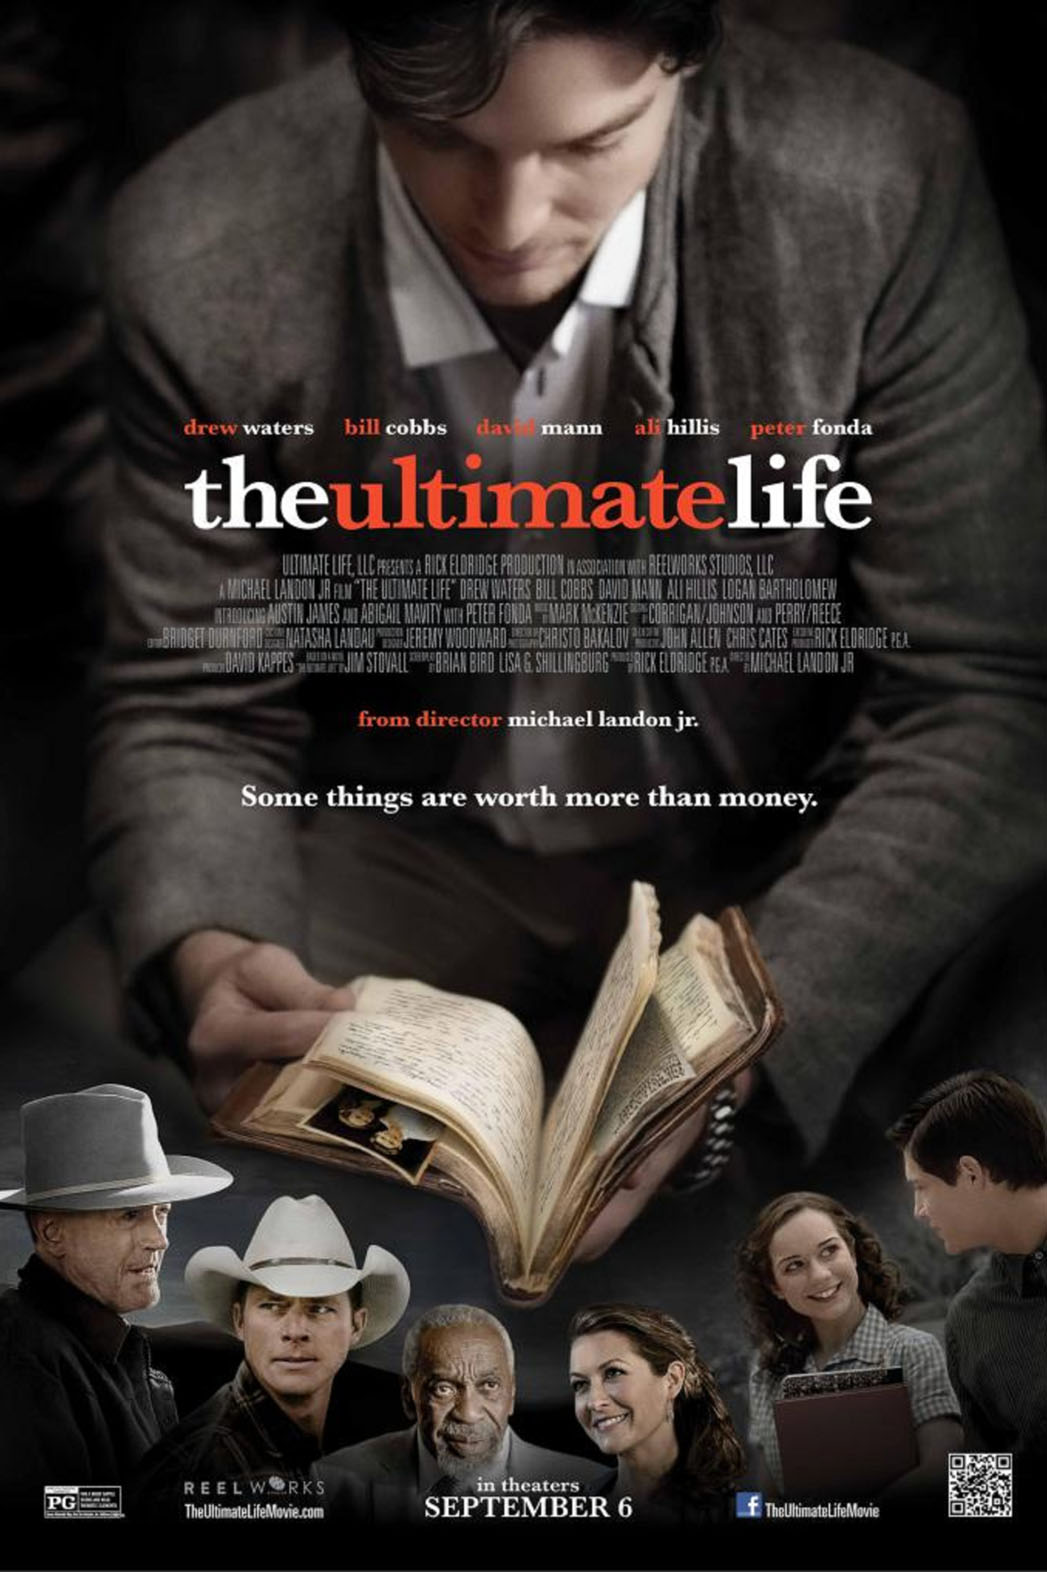 The Ultimate Life Poster - P 2013